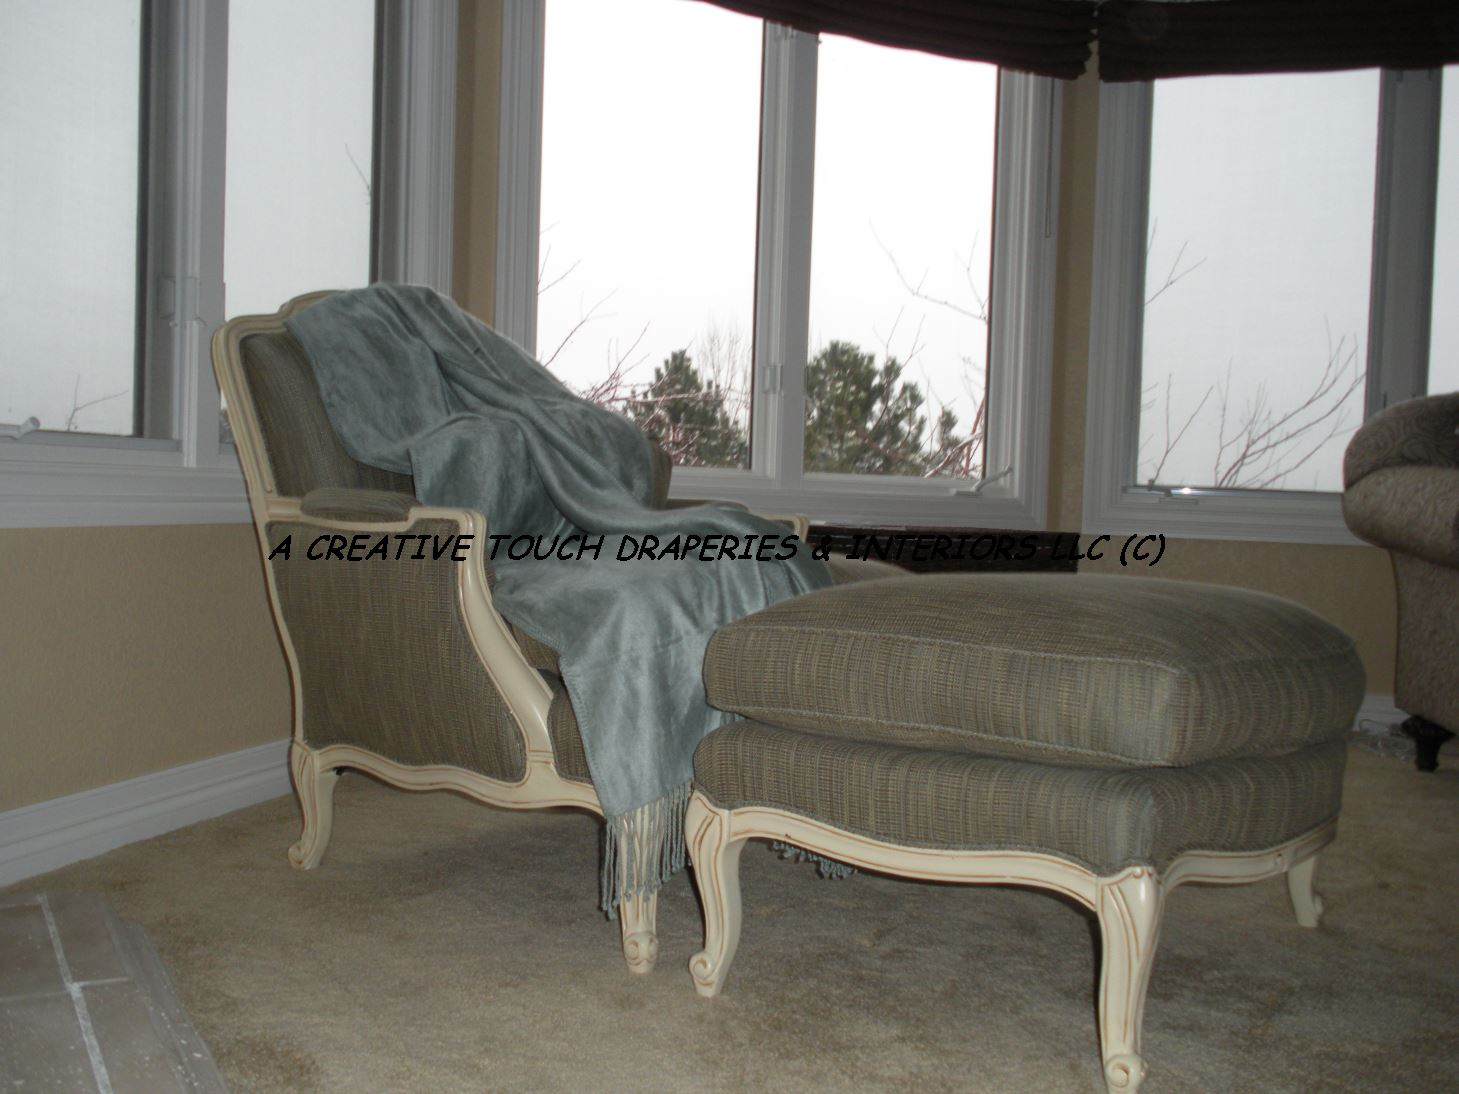 Chair and ottoman after upholstery updates